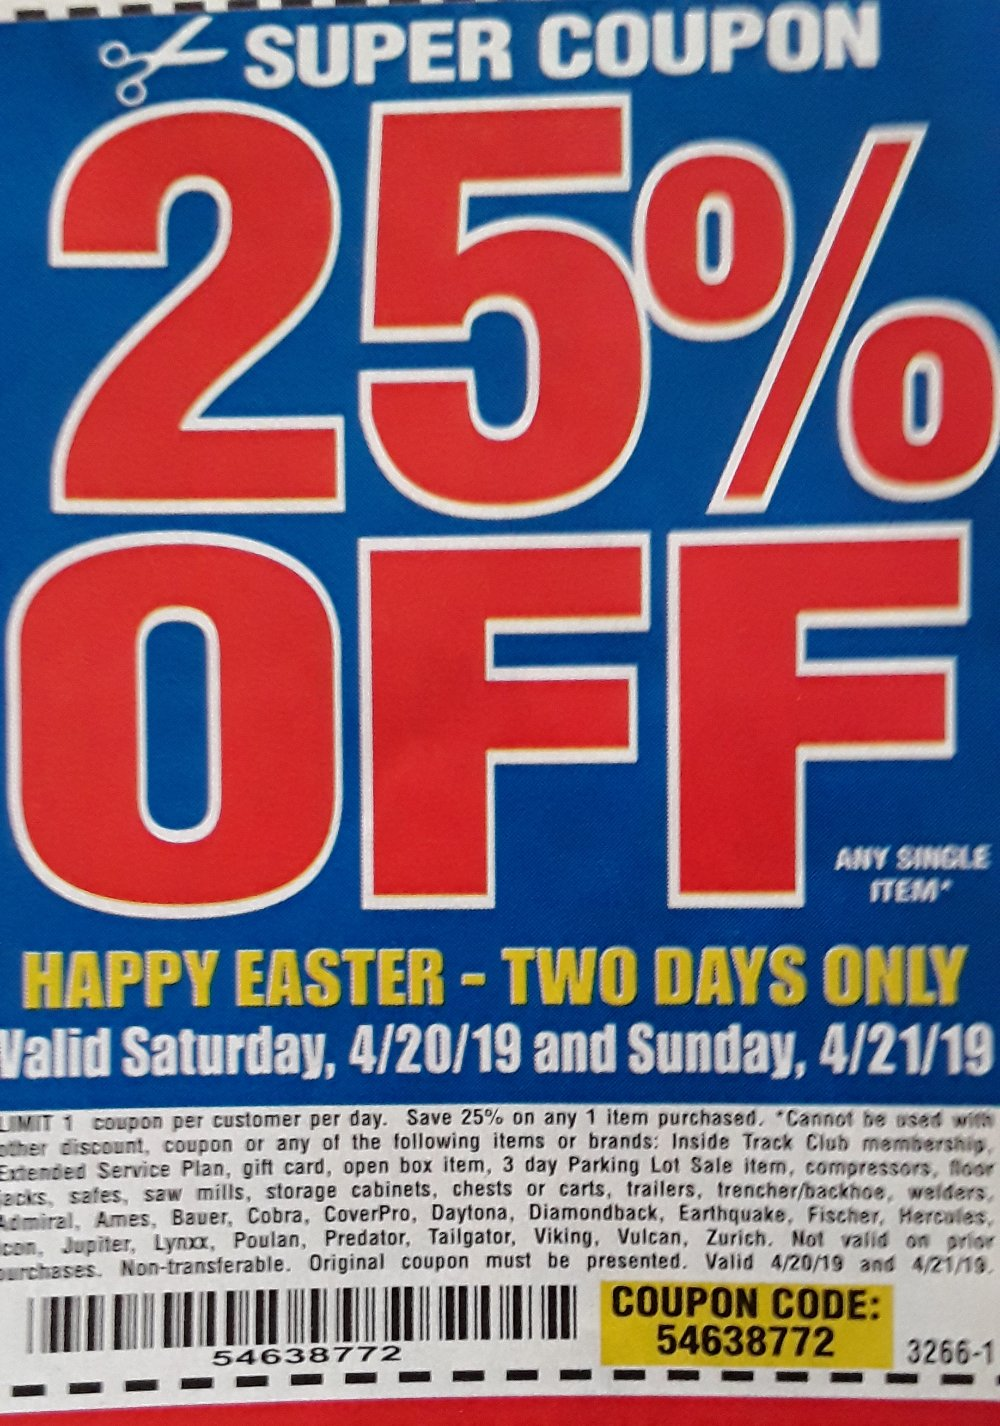 Harbor Freight Coupons Hf Coupons Hft Coupons Free Coupons 25